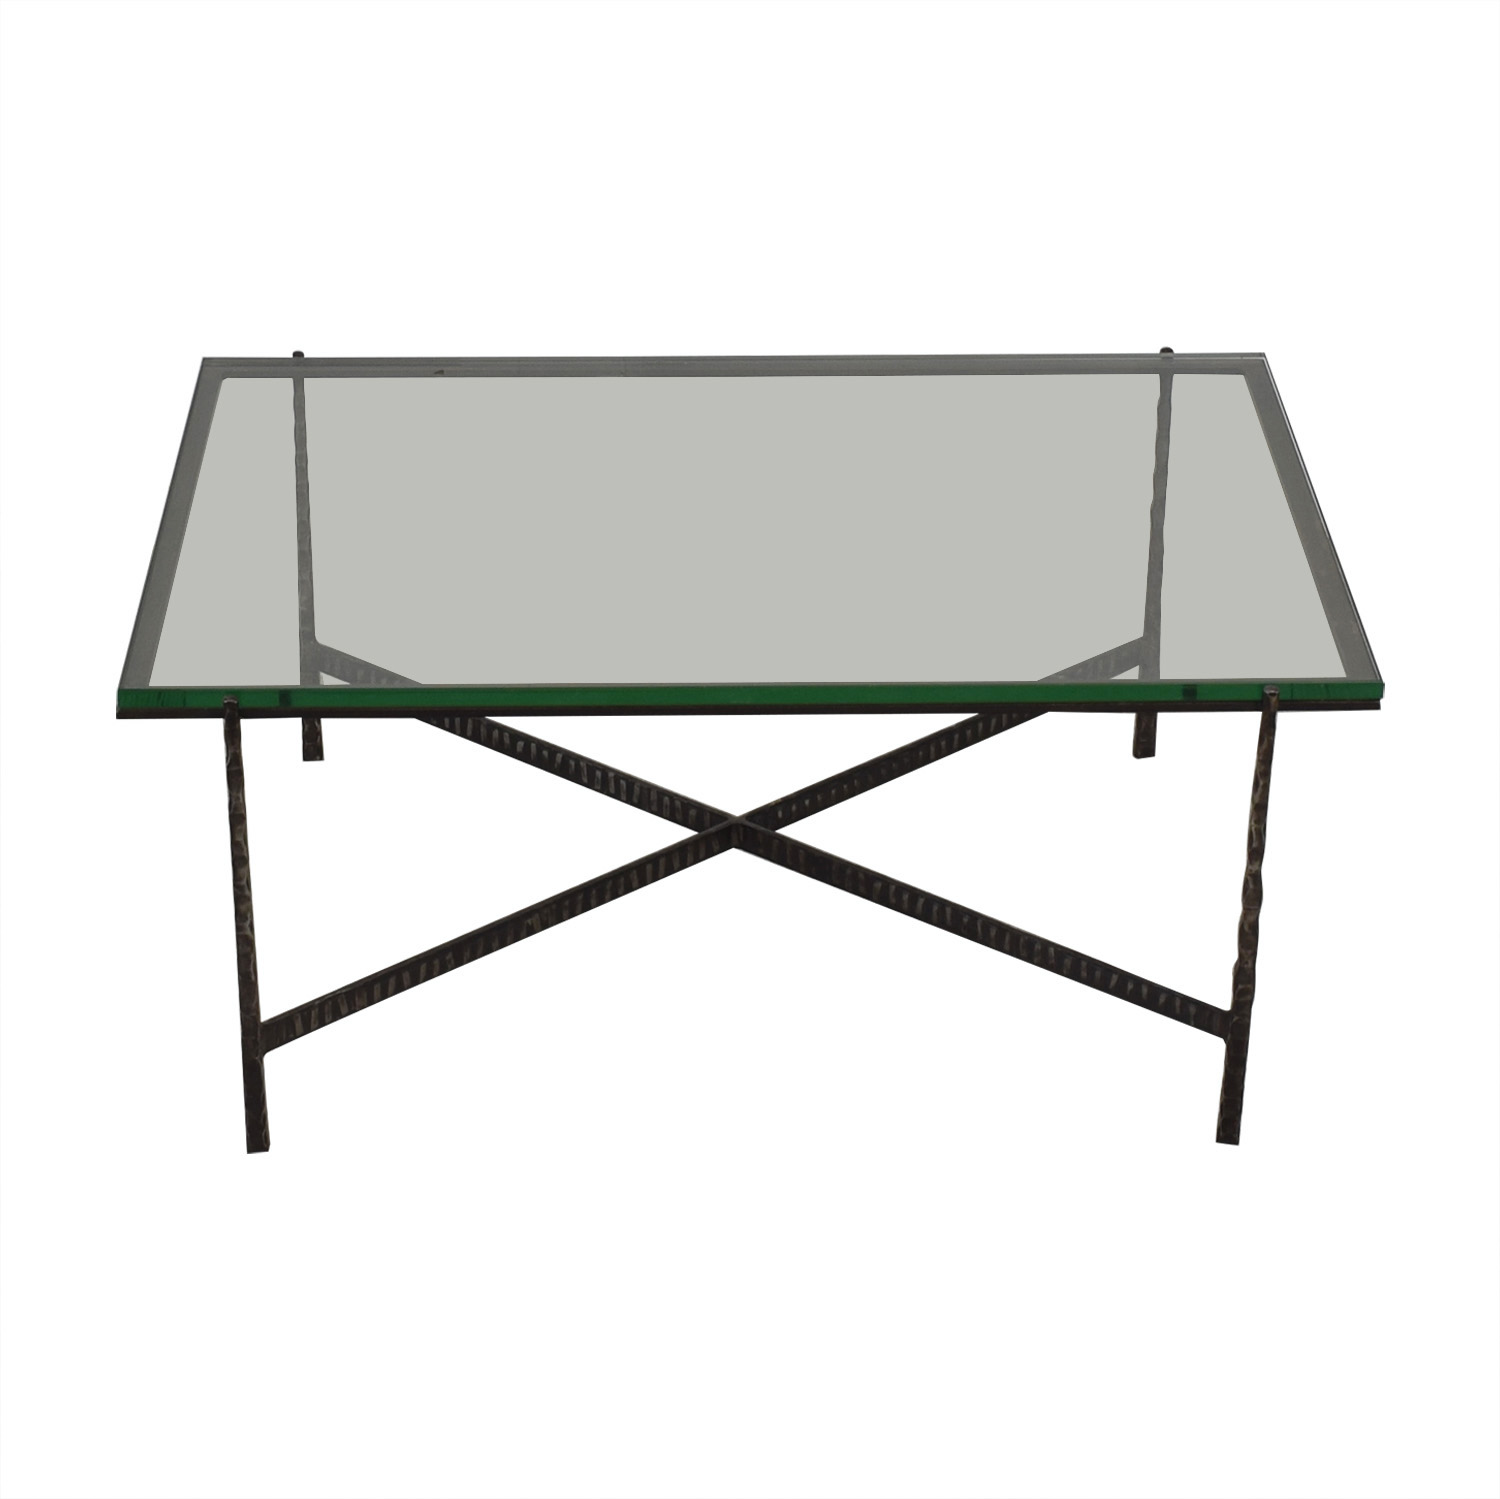 Crate & Barrel Glass Top Coffee Table sale